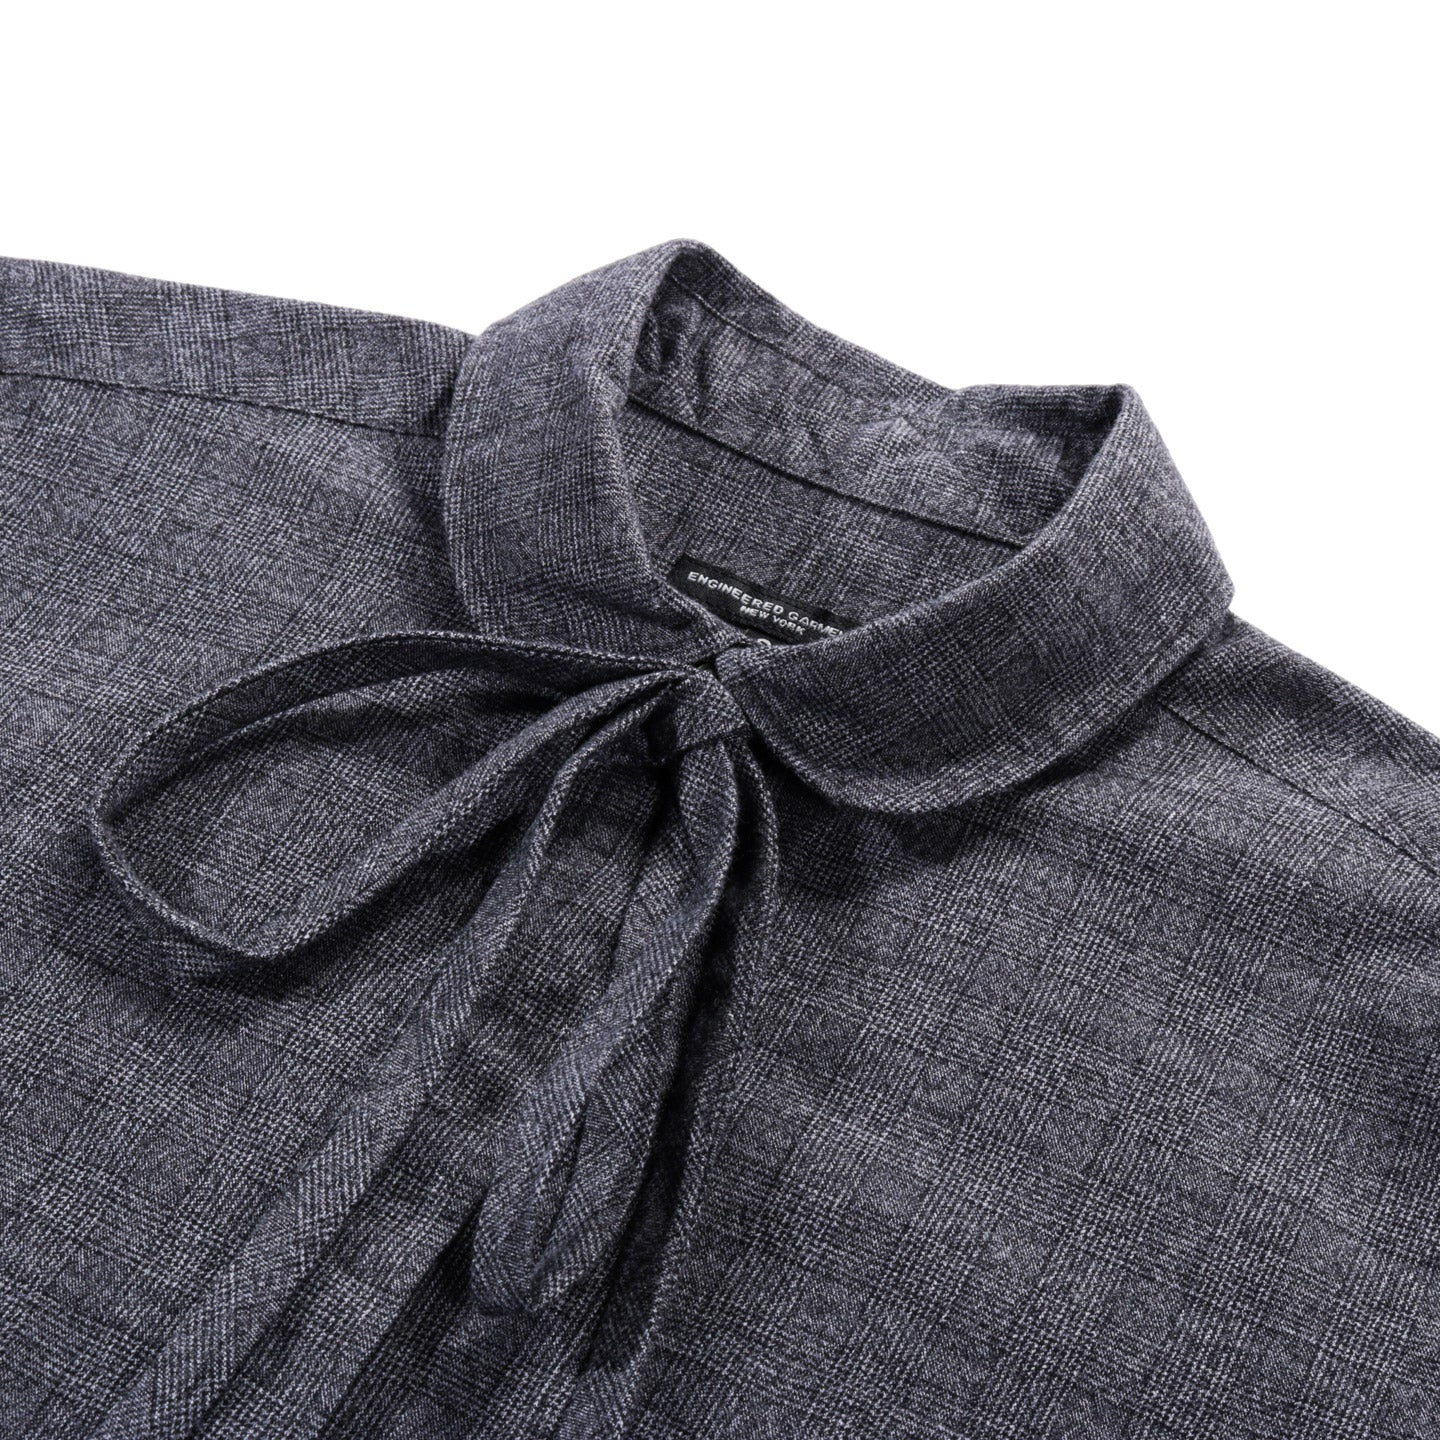 ENGINEERED GARMENTS DAYTON SHIRT DK NAVY